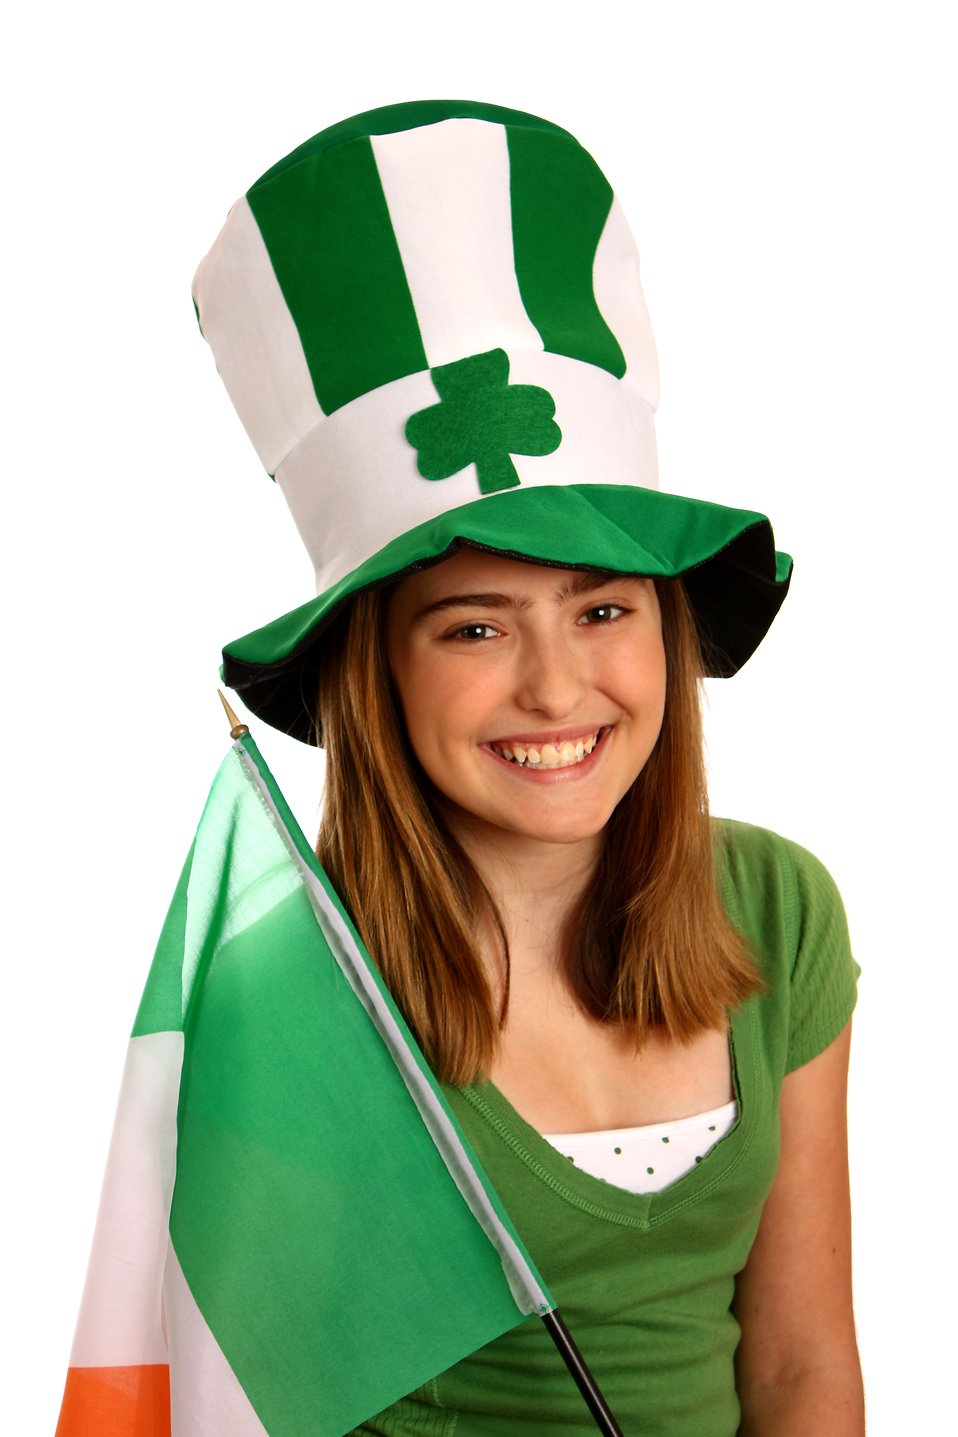 A cute young girl dressed up for Saint Patrick's Day holding an Irish flag : Free Stock Photo